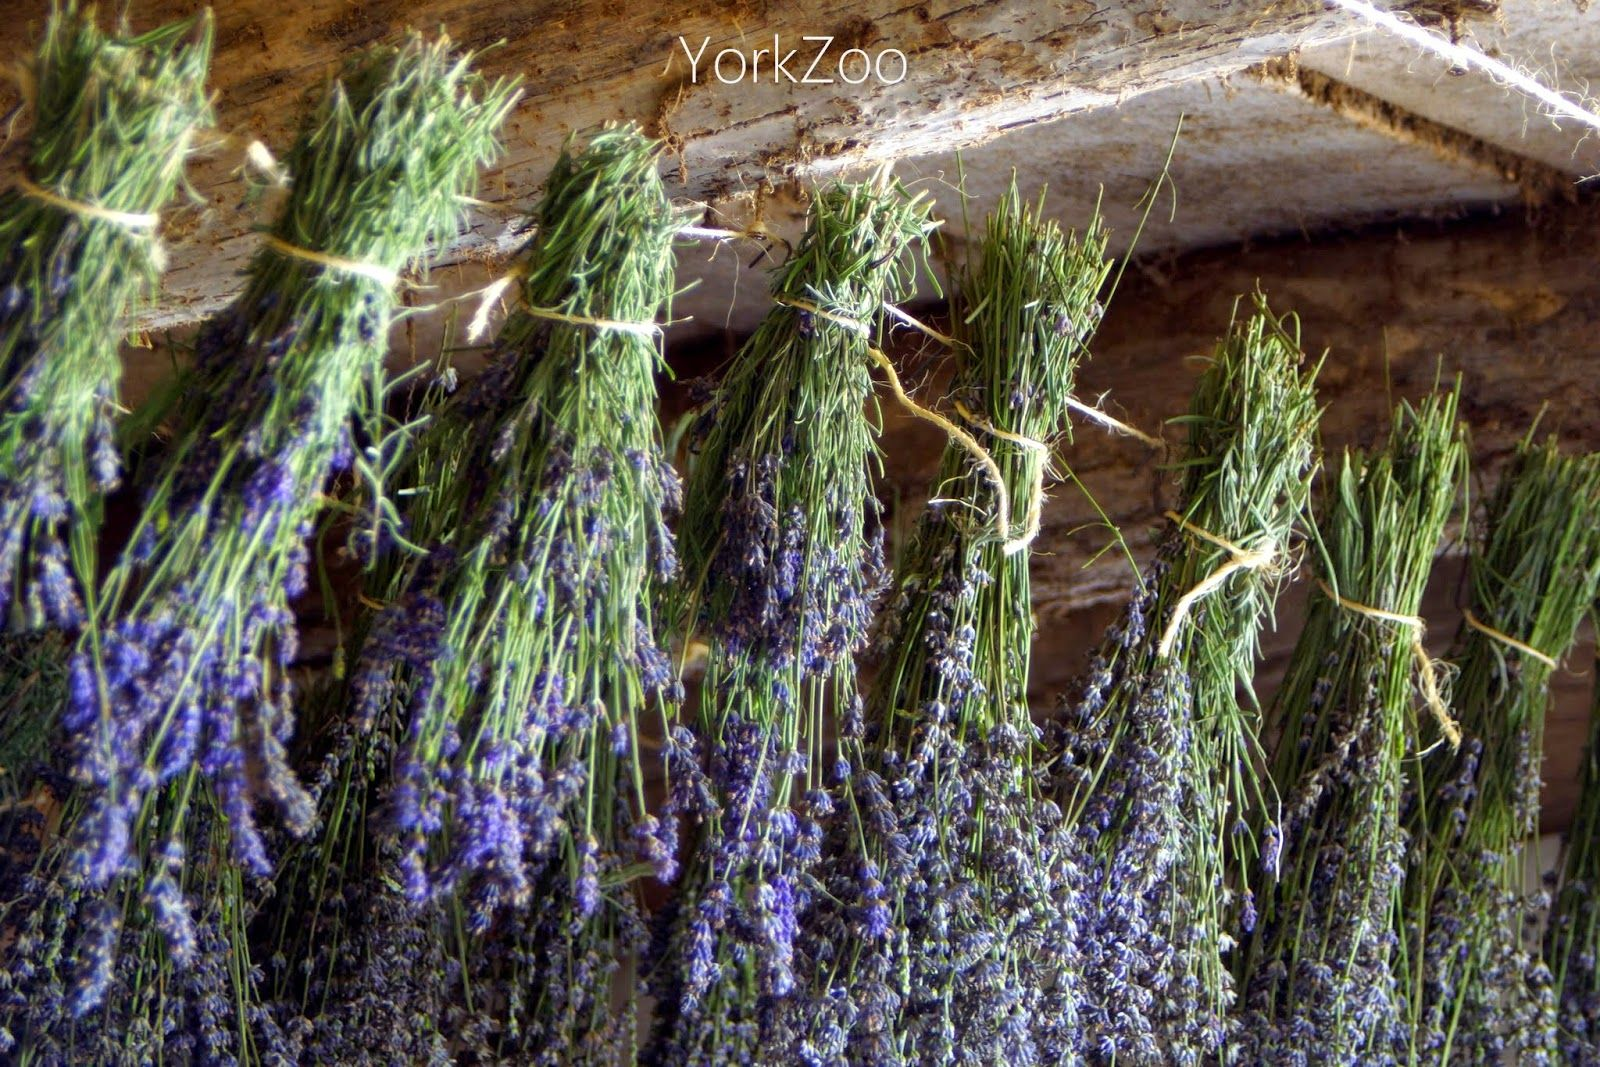 York Zoo-How May I Help You? blog. #lavender #lavenderharvest #barn #lavenderdryinginoldbarn